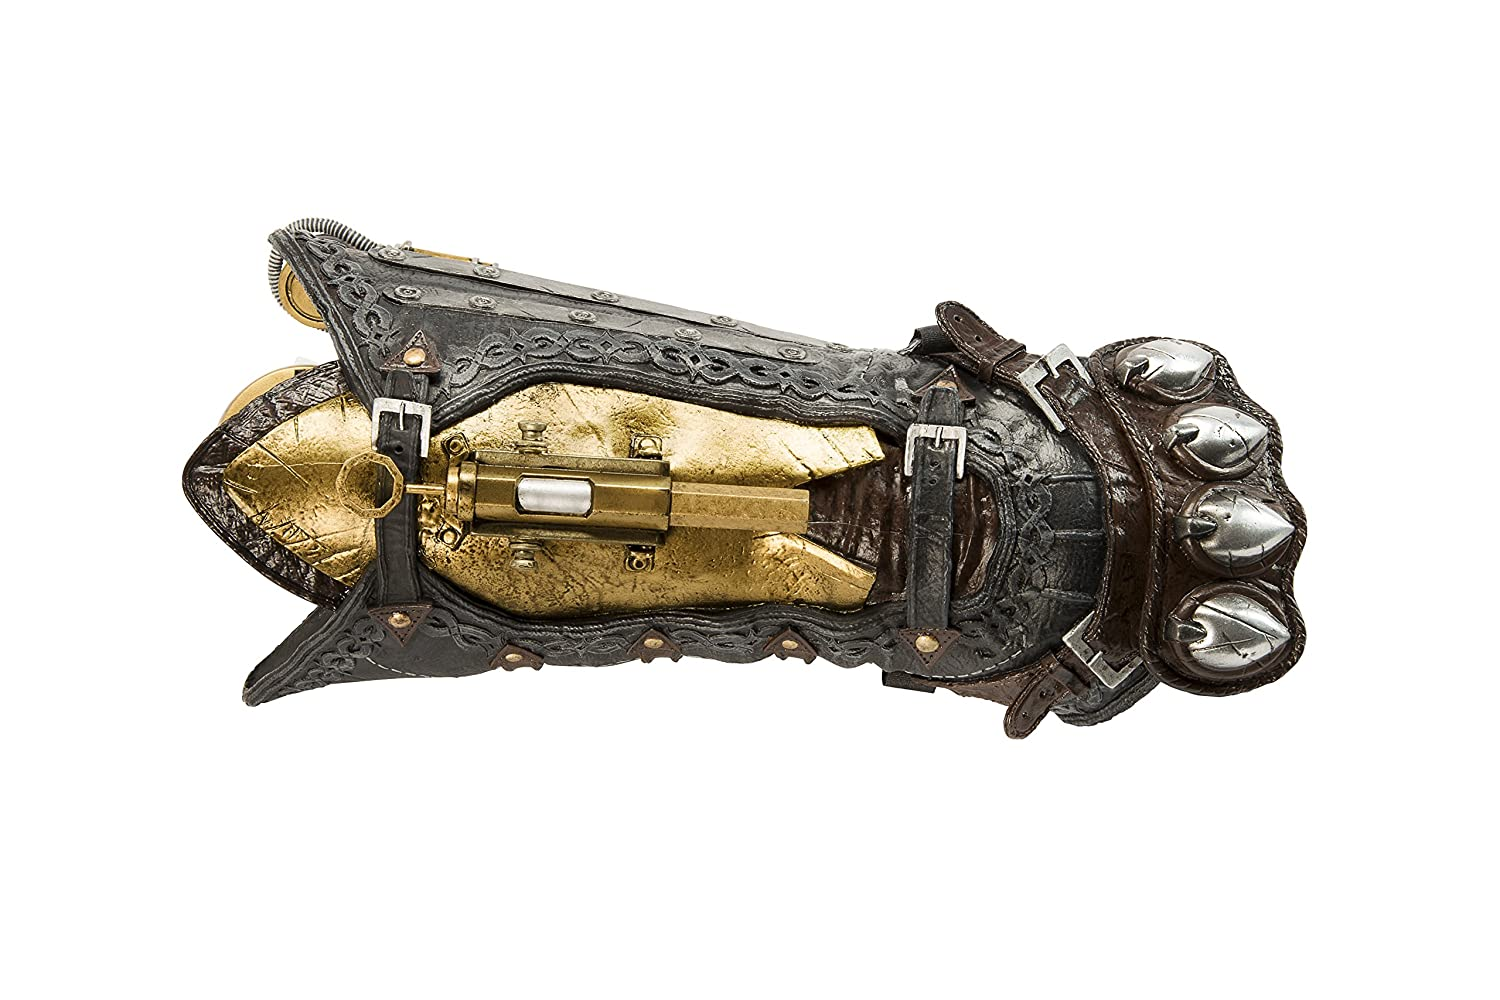 Assassin S Creed Syndicate Mcfarlane Toys Gauntlet With Hidden Phantom Blade